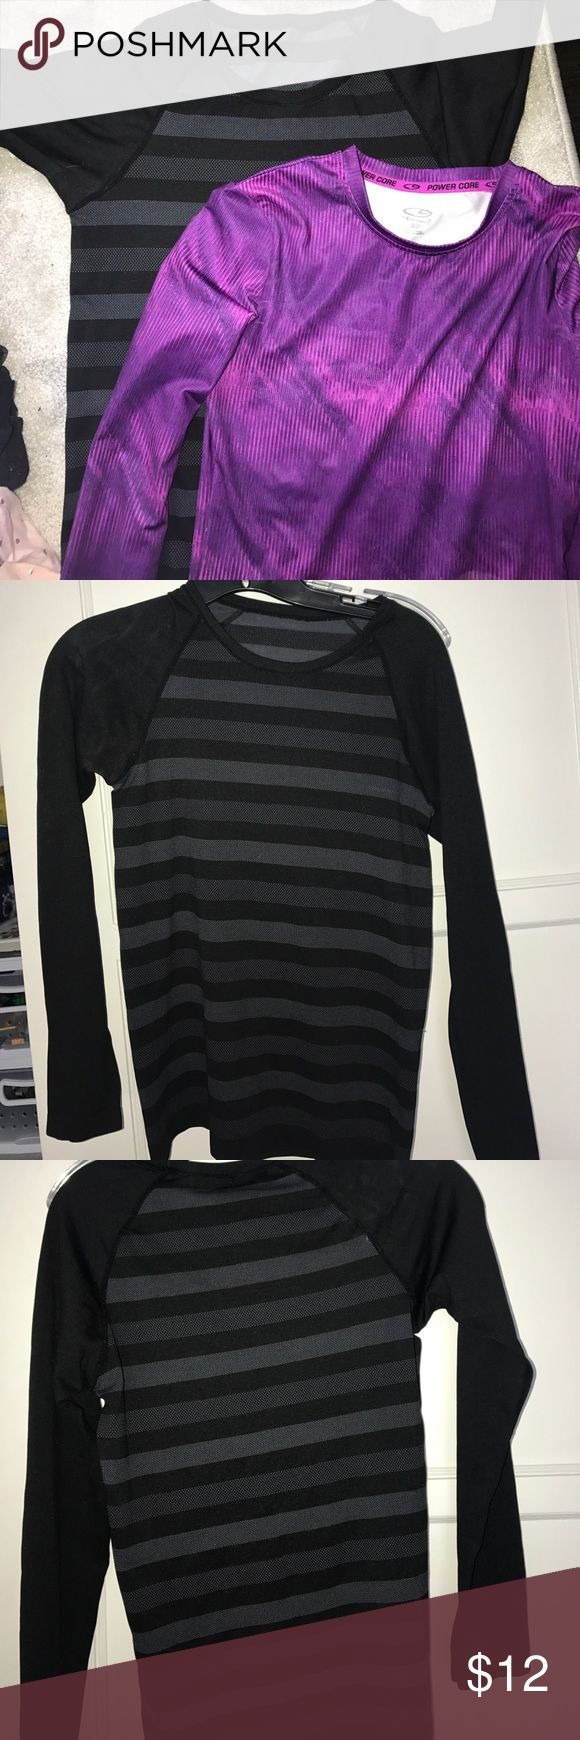 2 Champion long sleeved workout tops Size S black and grey striped long sleeve top, Size S purple long sleeved top, both perfect condition Champion Tops Tees - Long Sleeve